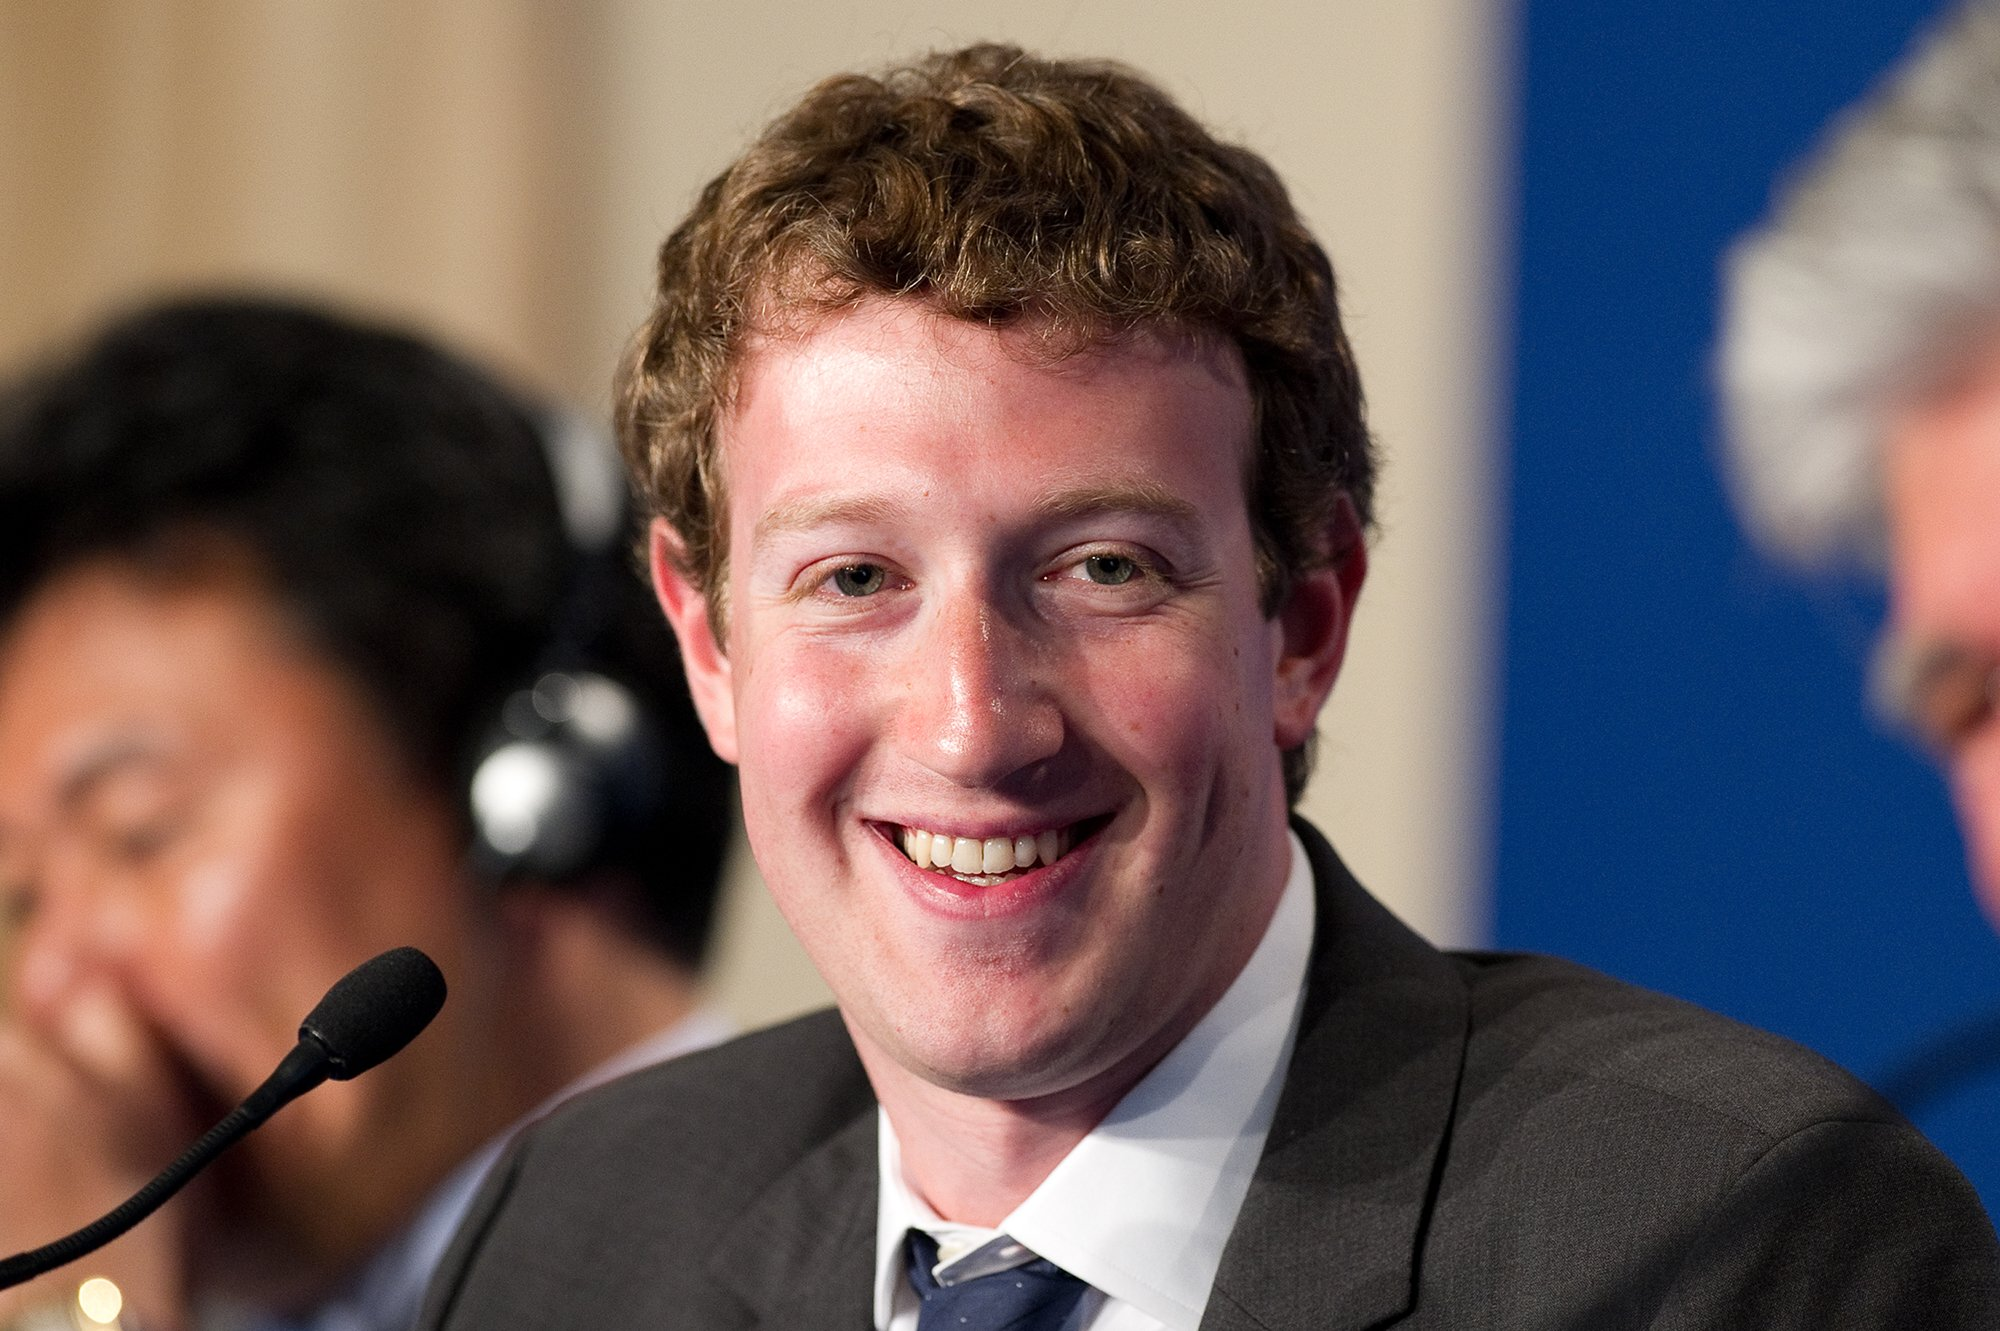 Facebook CEO Mark Zuckerberg participates to a conference about web technologies during the French G8 in 2011. Photograph via iStock.